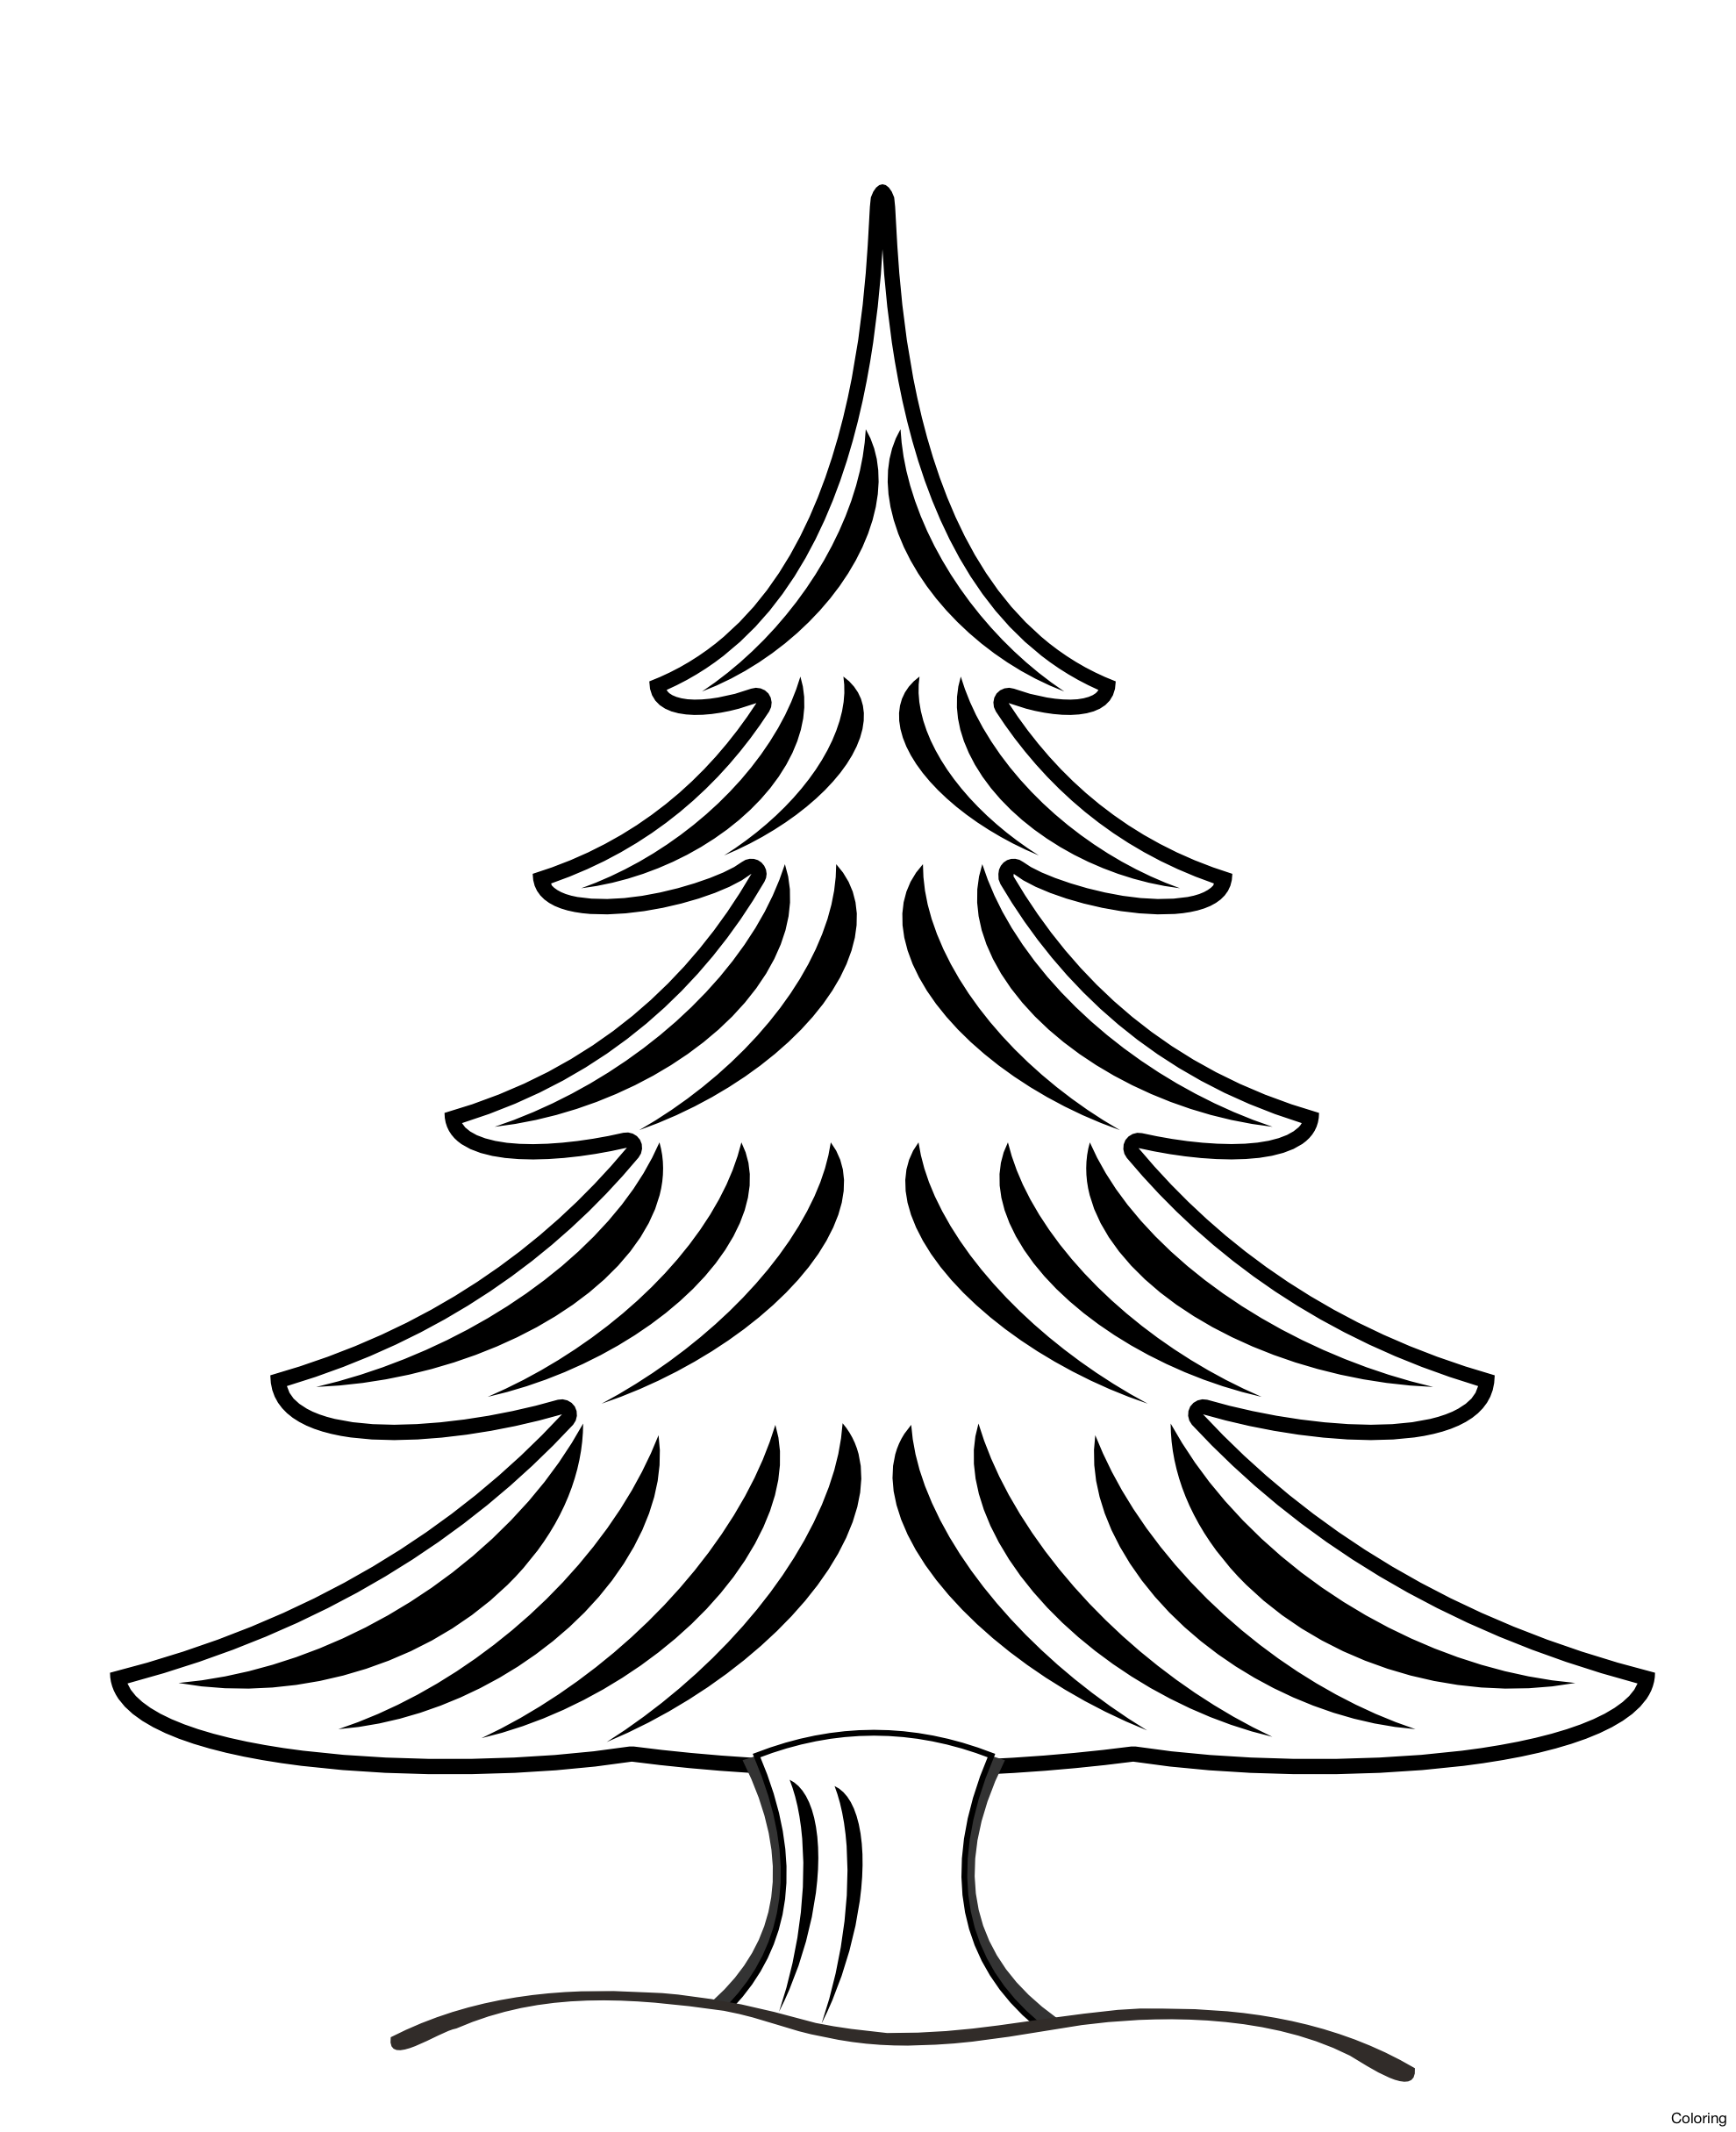 Pine tree with snow clipart clip art freeuse library White Pine Drawing at GetDrawings.com | Free for personal use White ... clip art freeuse library